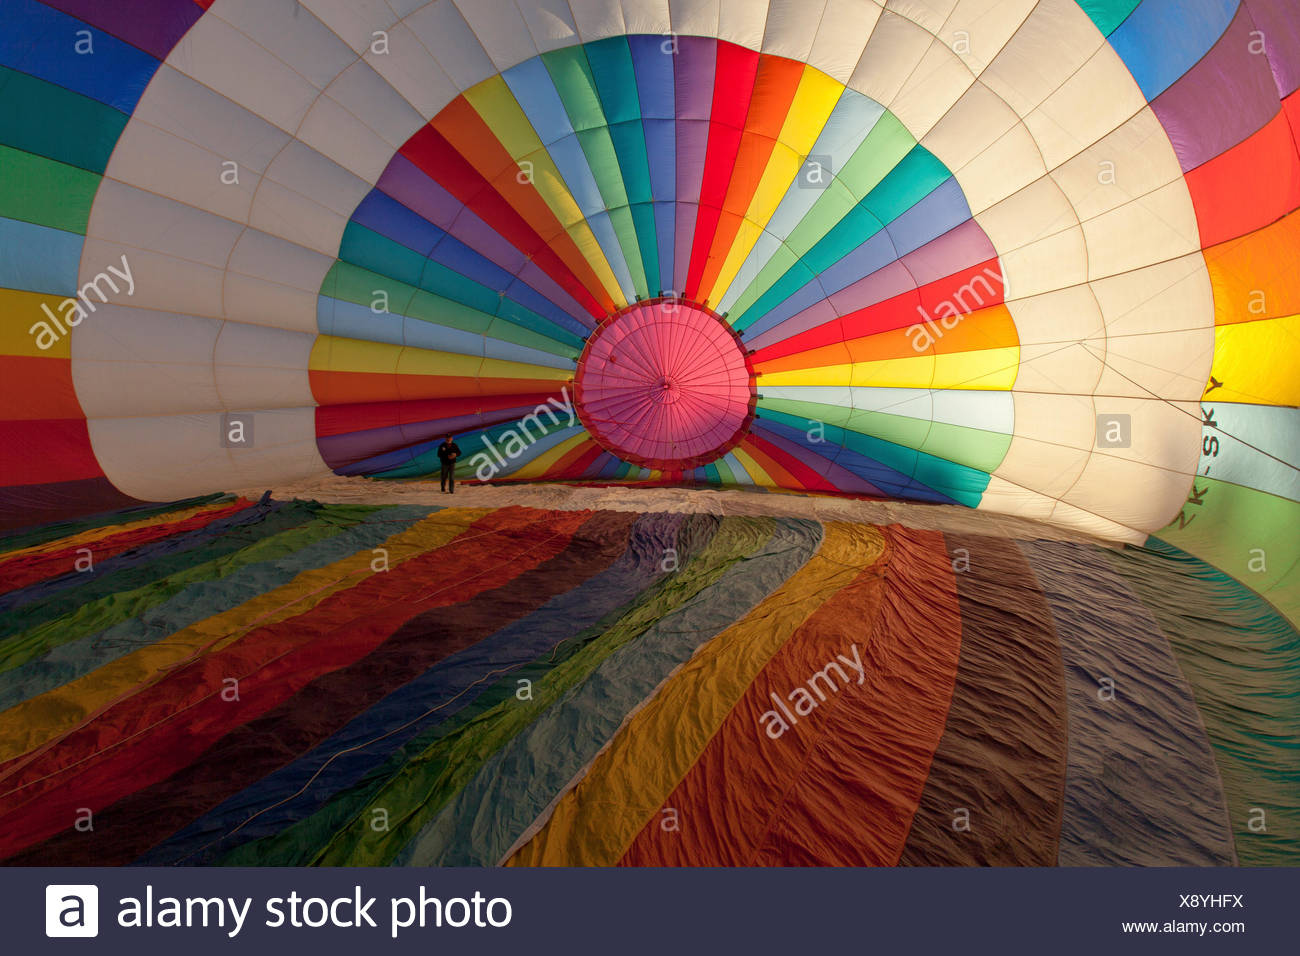 Brightly coloured hot air balloon from the inside, about to be filled with air before take-off, Sport Stock Photo